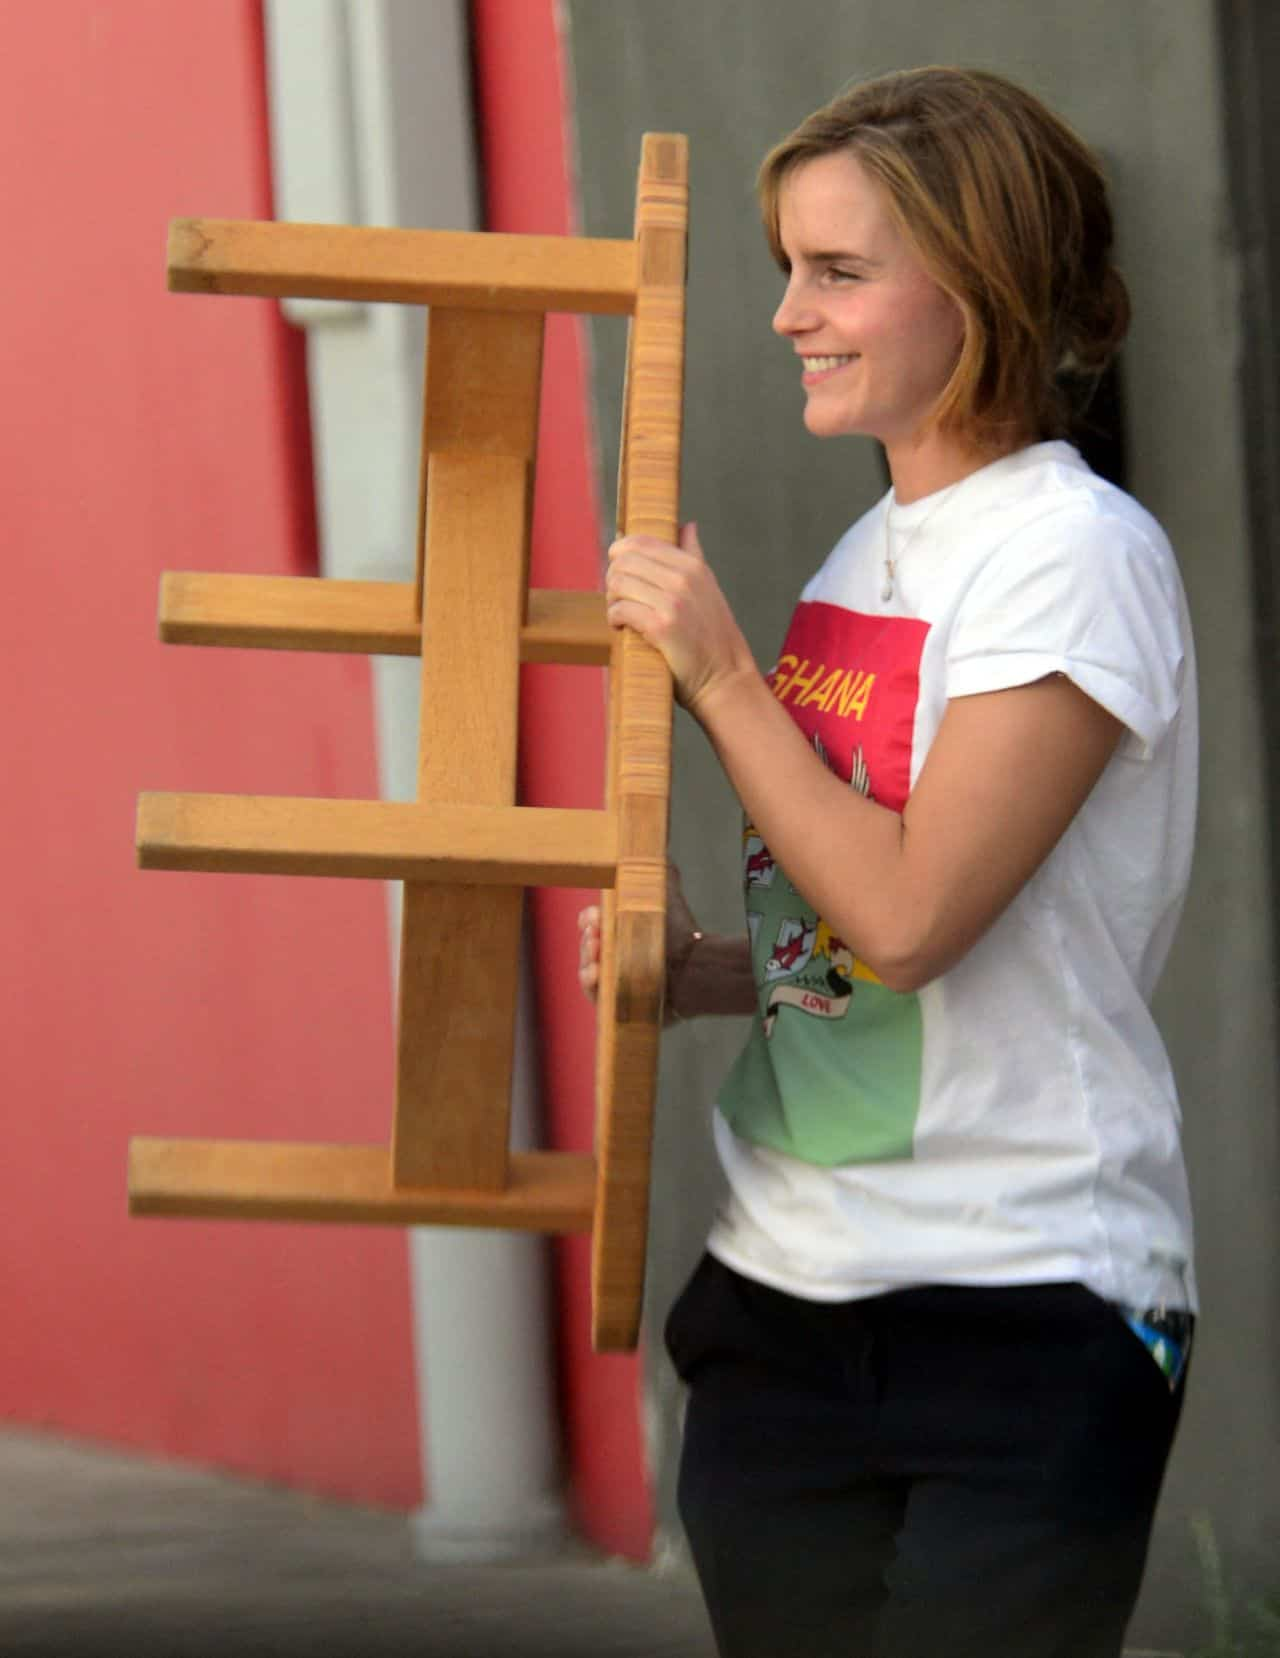 Emma Watson Furniture Shopping in West Hollywood